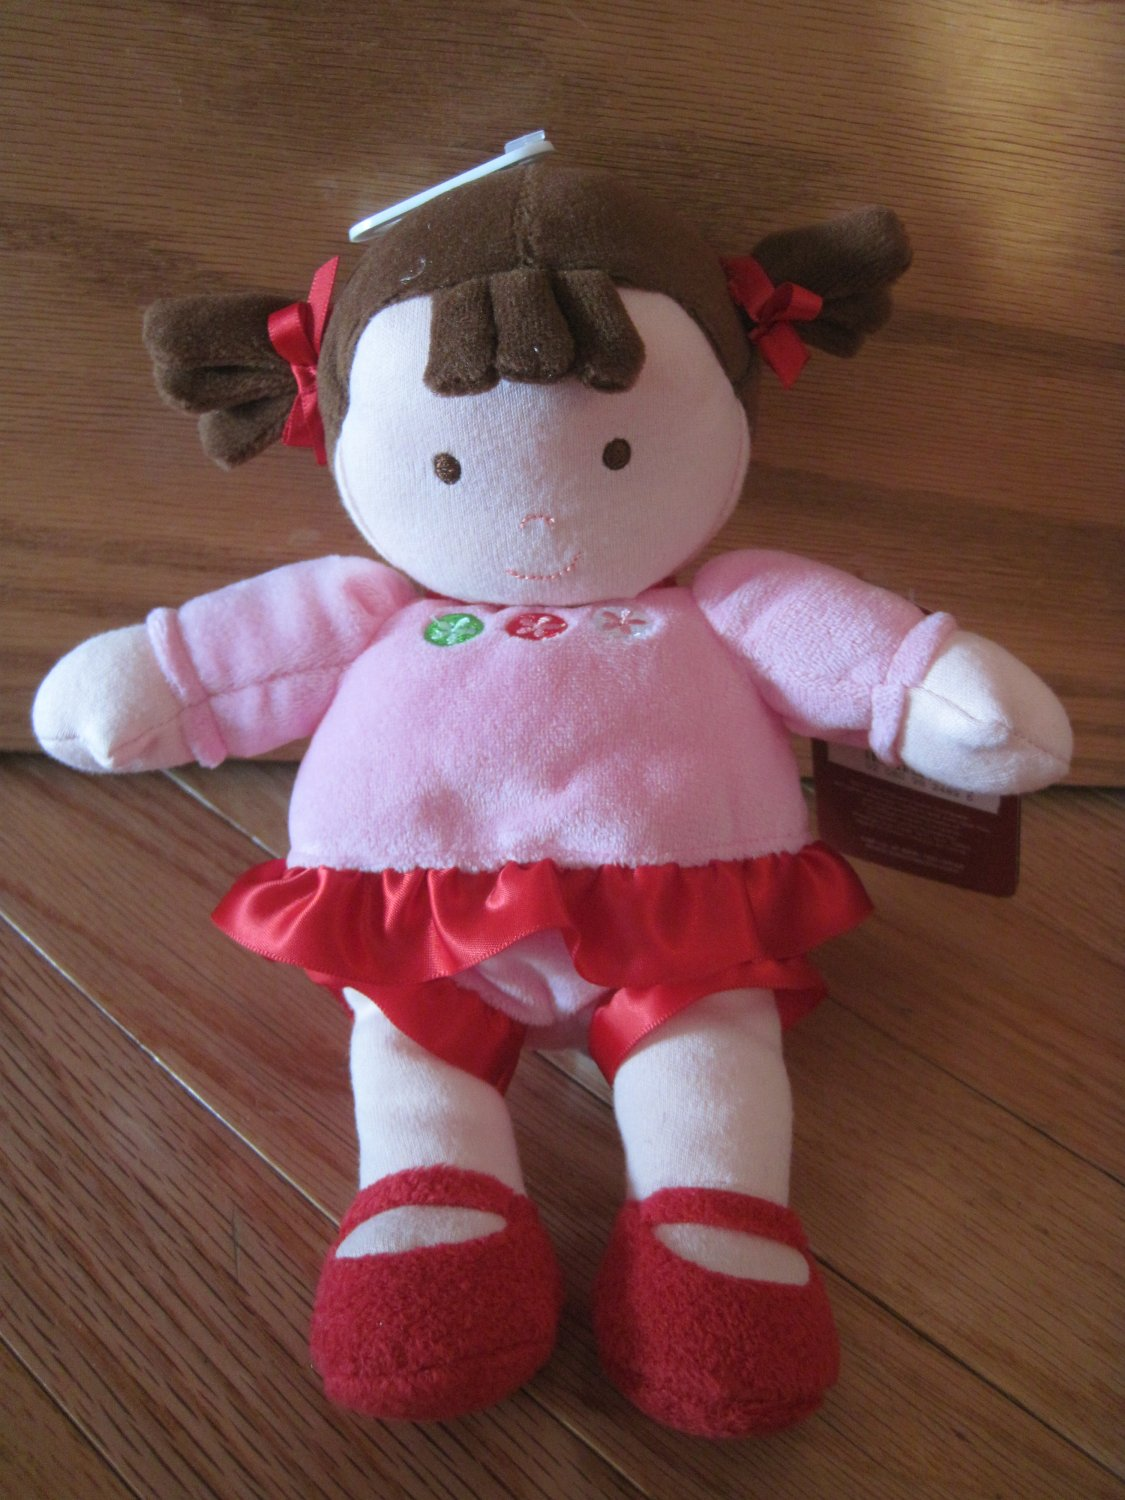 Carters Just One You Plush Baby Doll Brown Ponytails Pink Red Dress Circle Flowers 92489